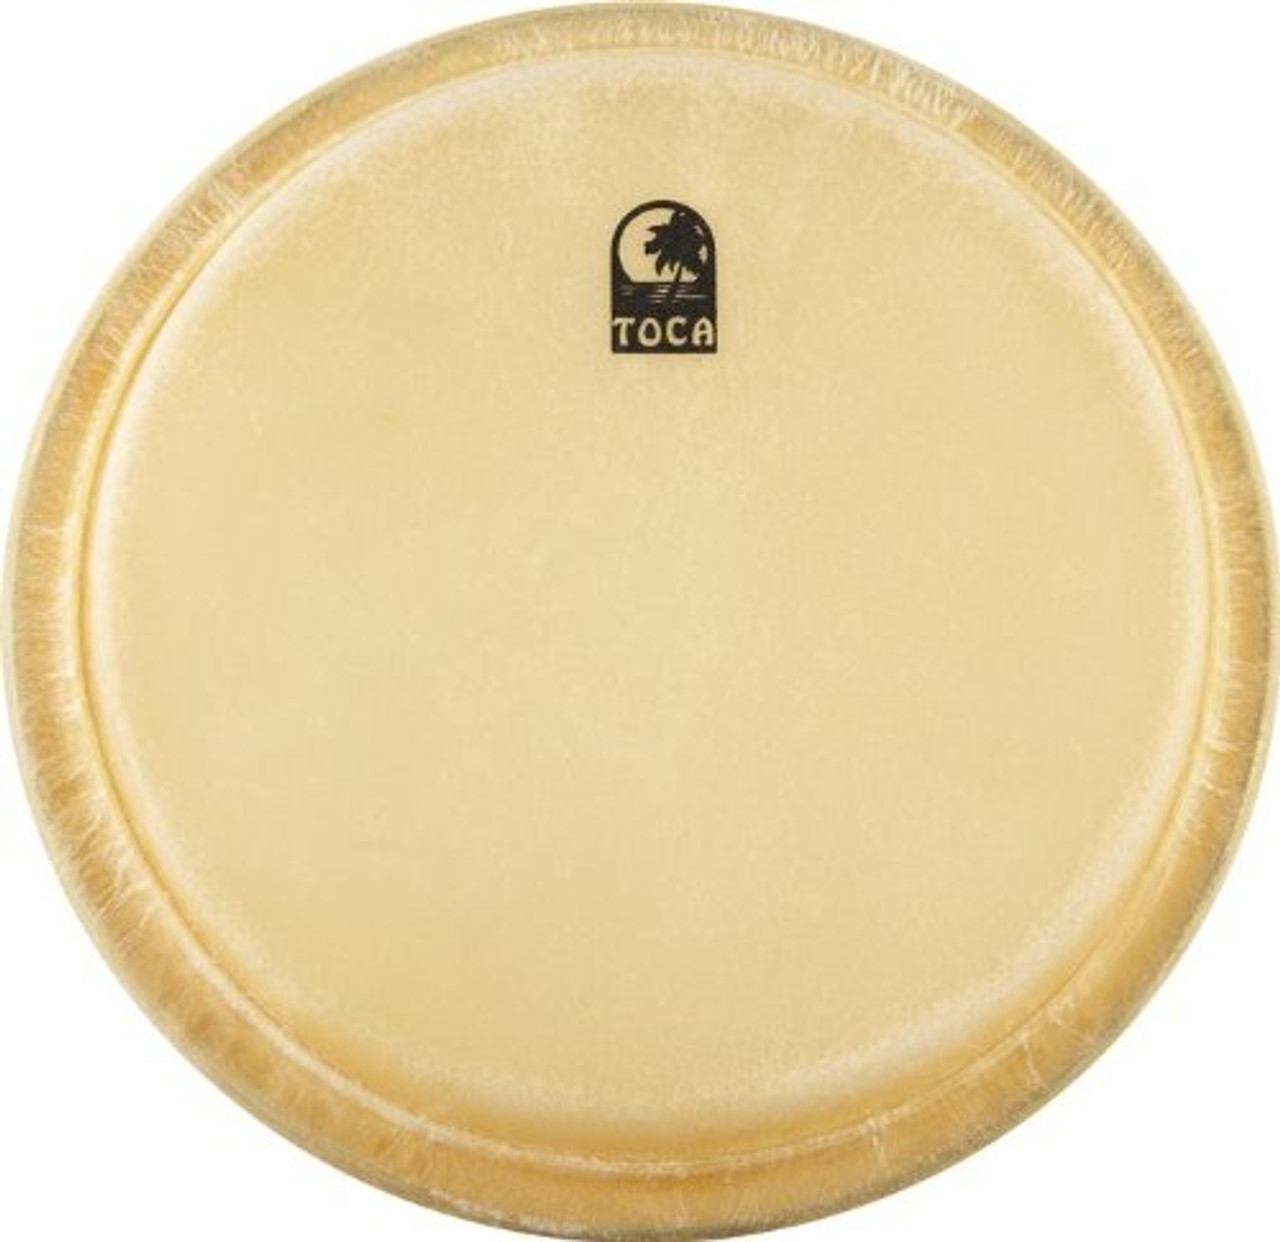 """Toca a TP-20121 11"""" Tuning Hoop for Player's 2800 & 2700 Wood Series Conga - Black"""